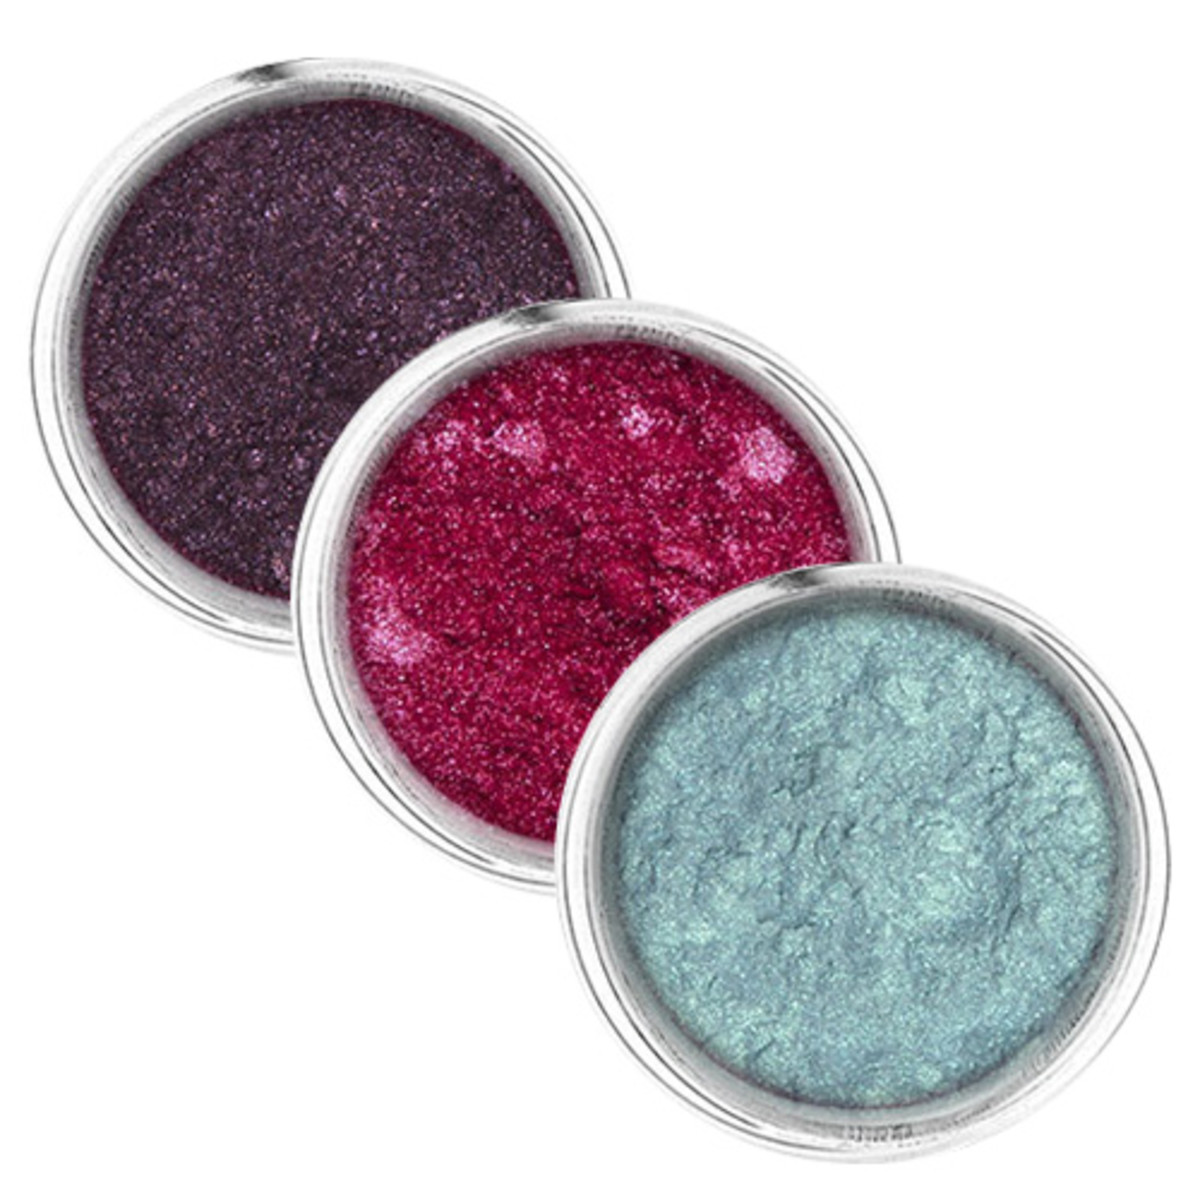 Loose Colour Concentrate in Overlook, Cherry Bomb, Jubilee